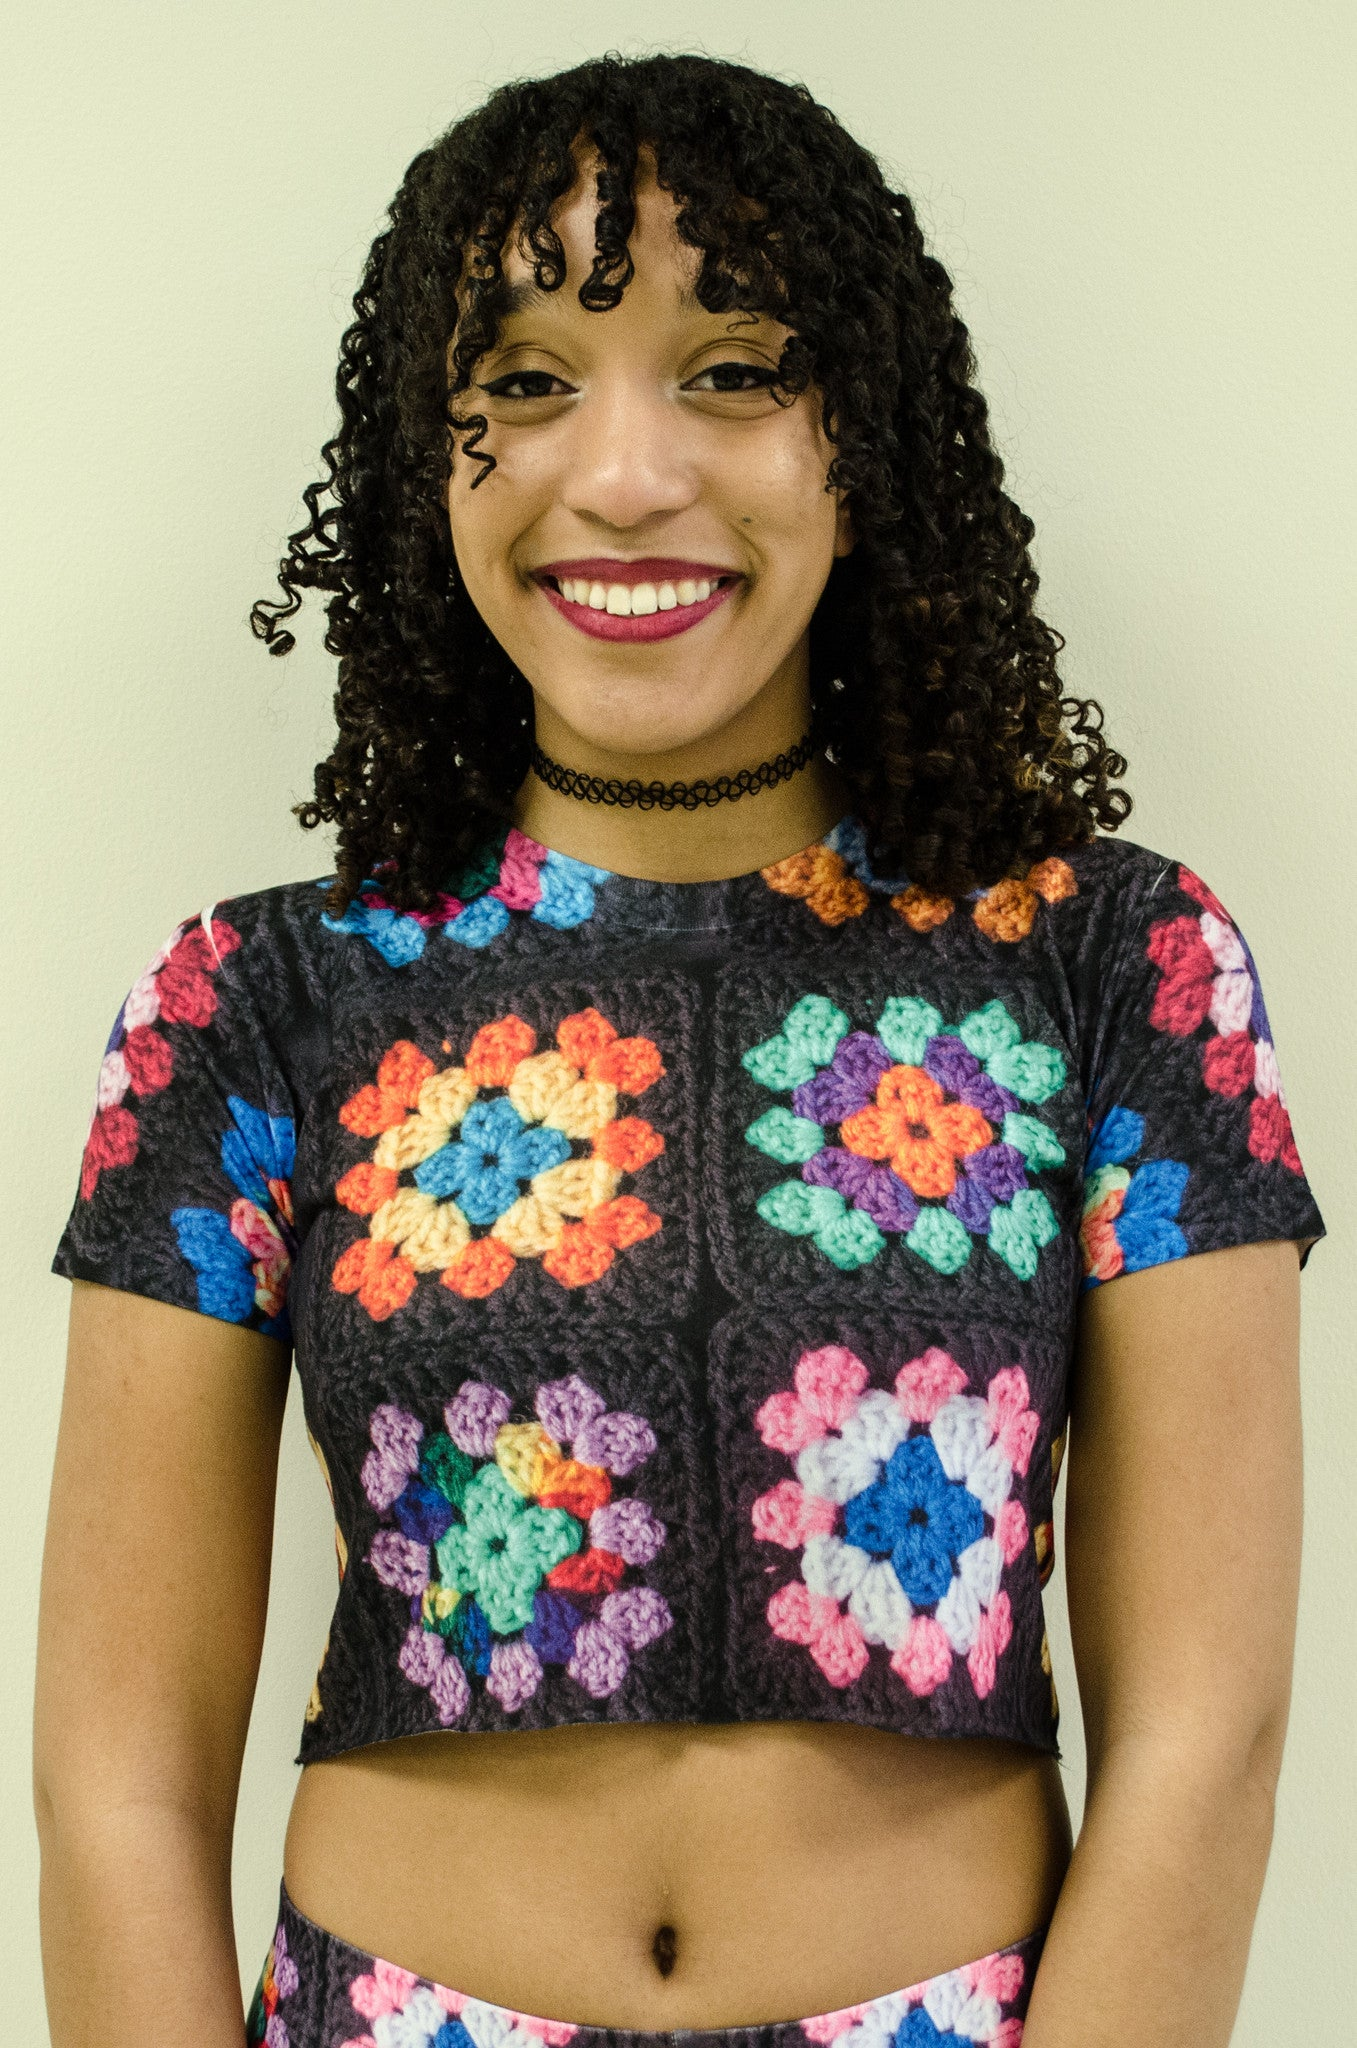 Kaleidoscope Granny Square Crochet Print Crop Top Tee Shirt